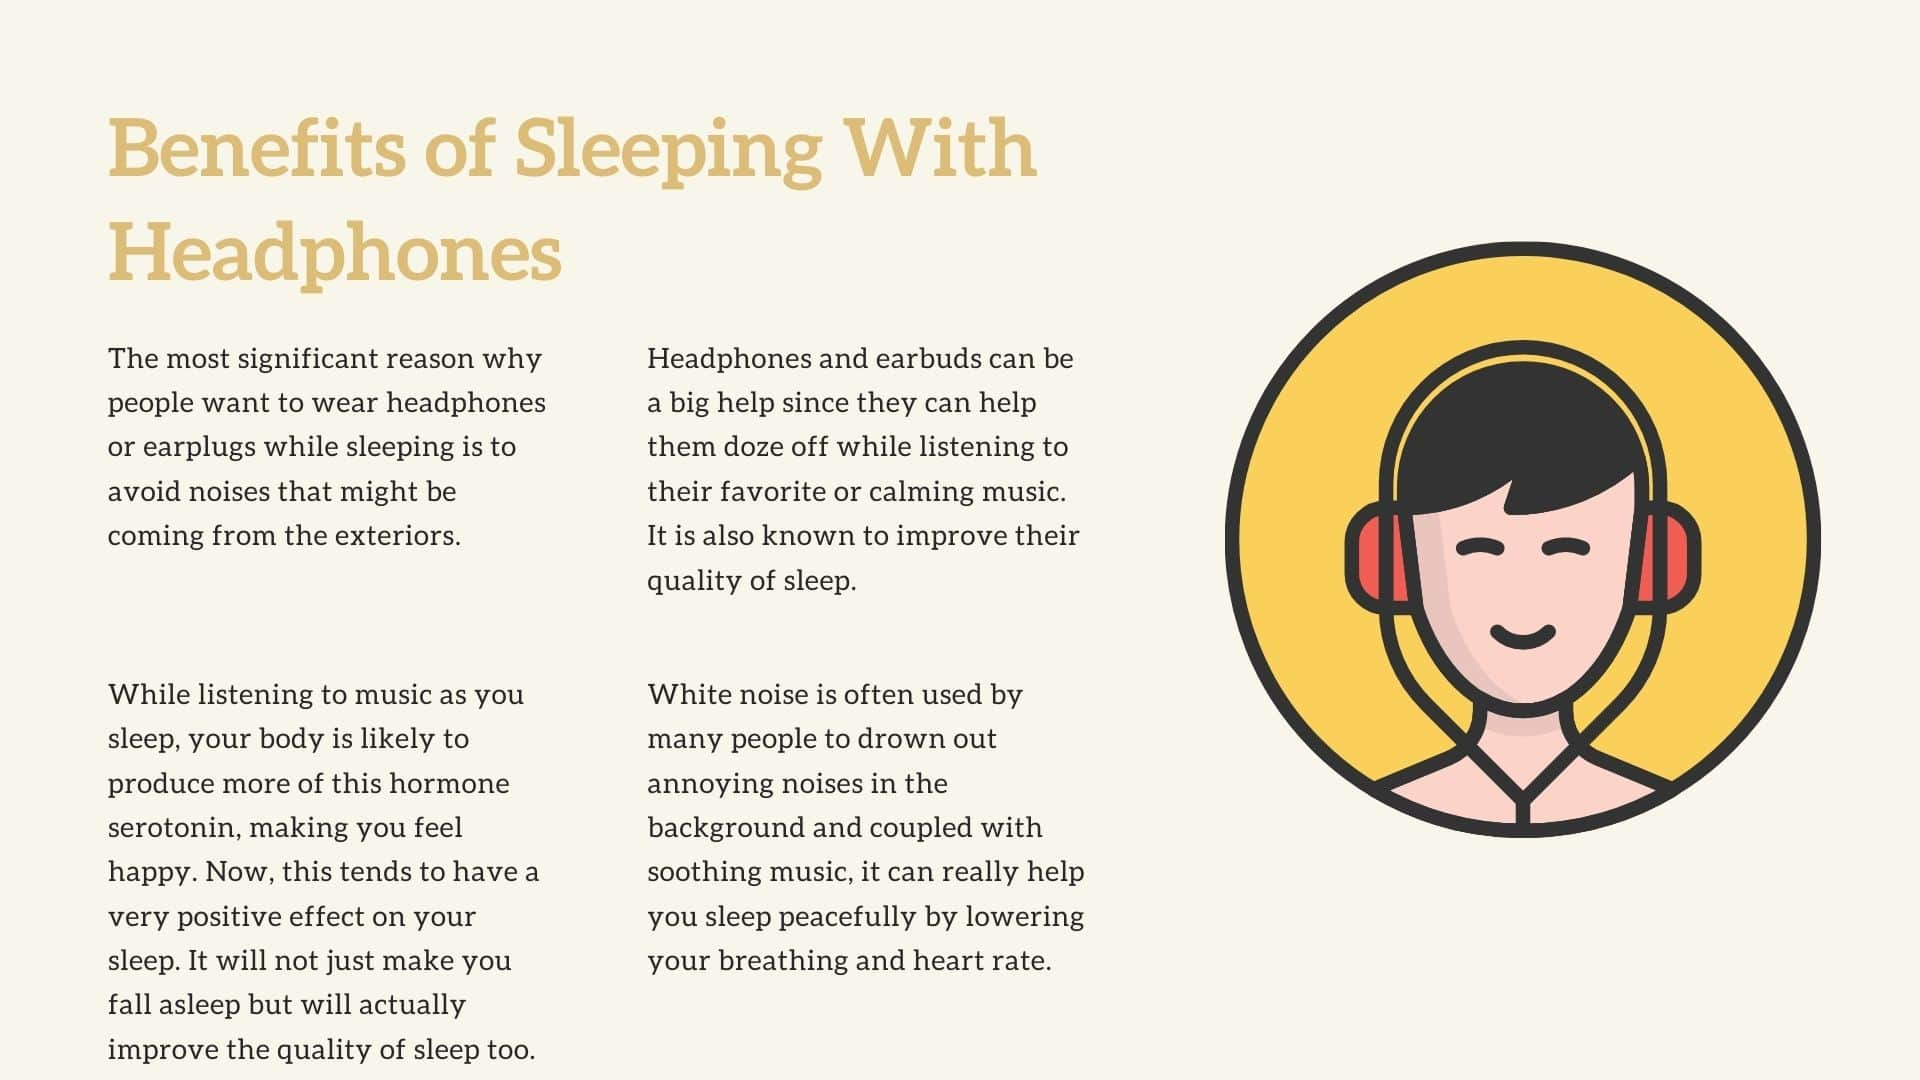 listening to music while you sleep